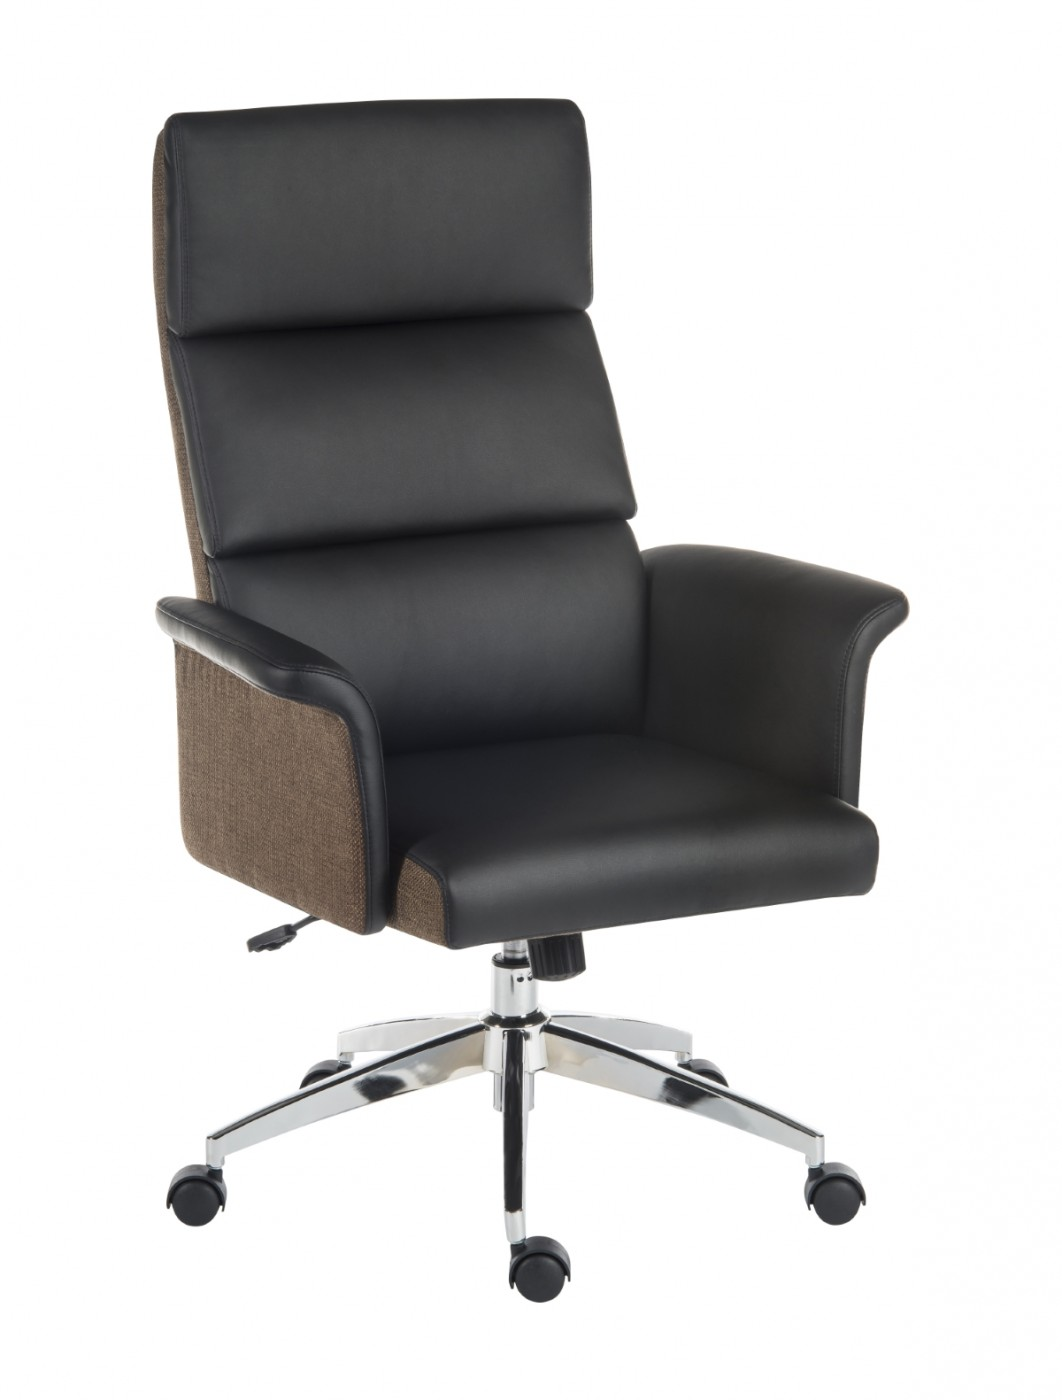 office chair high back swing patio furniture chairs teknik elegance executive